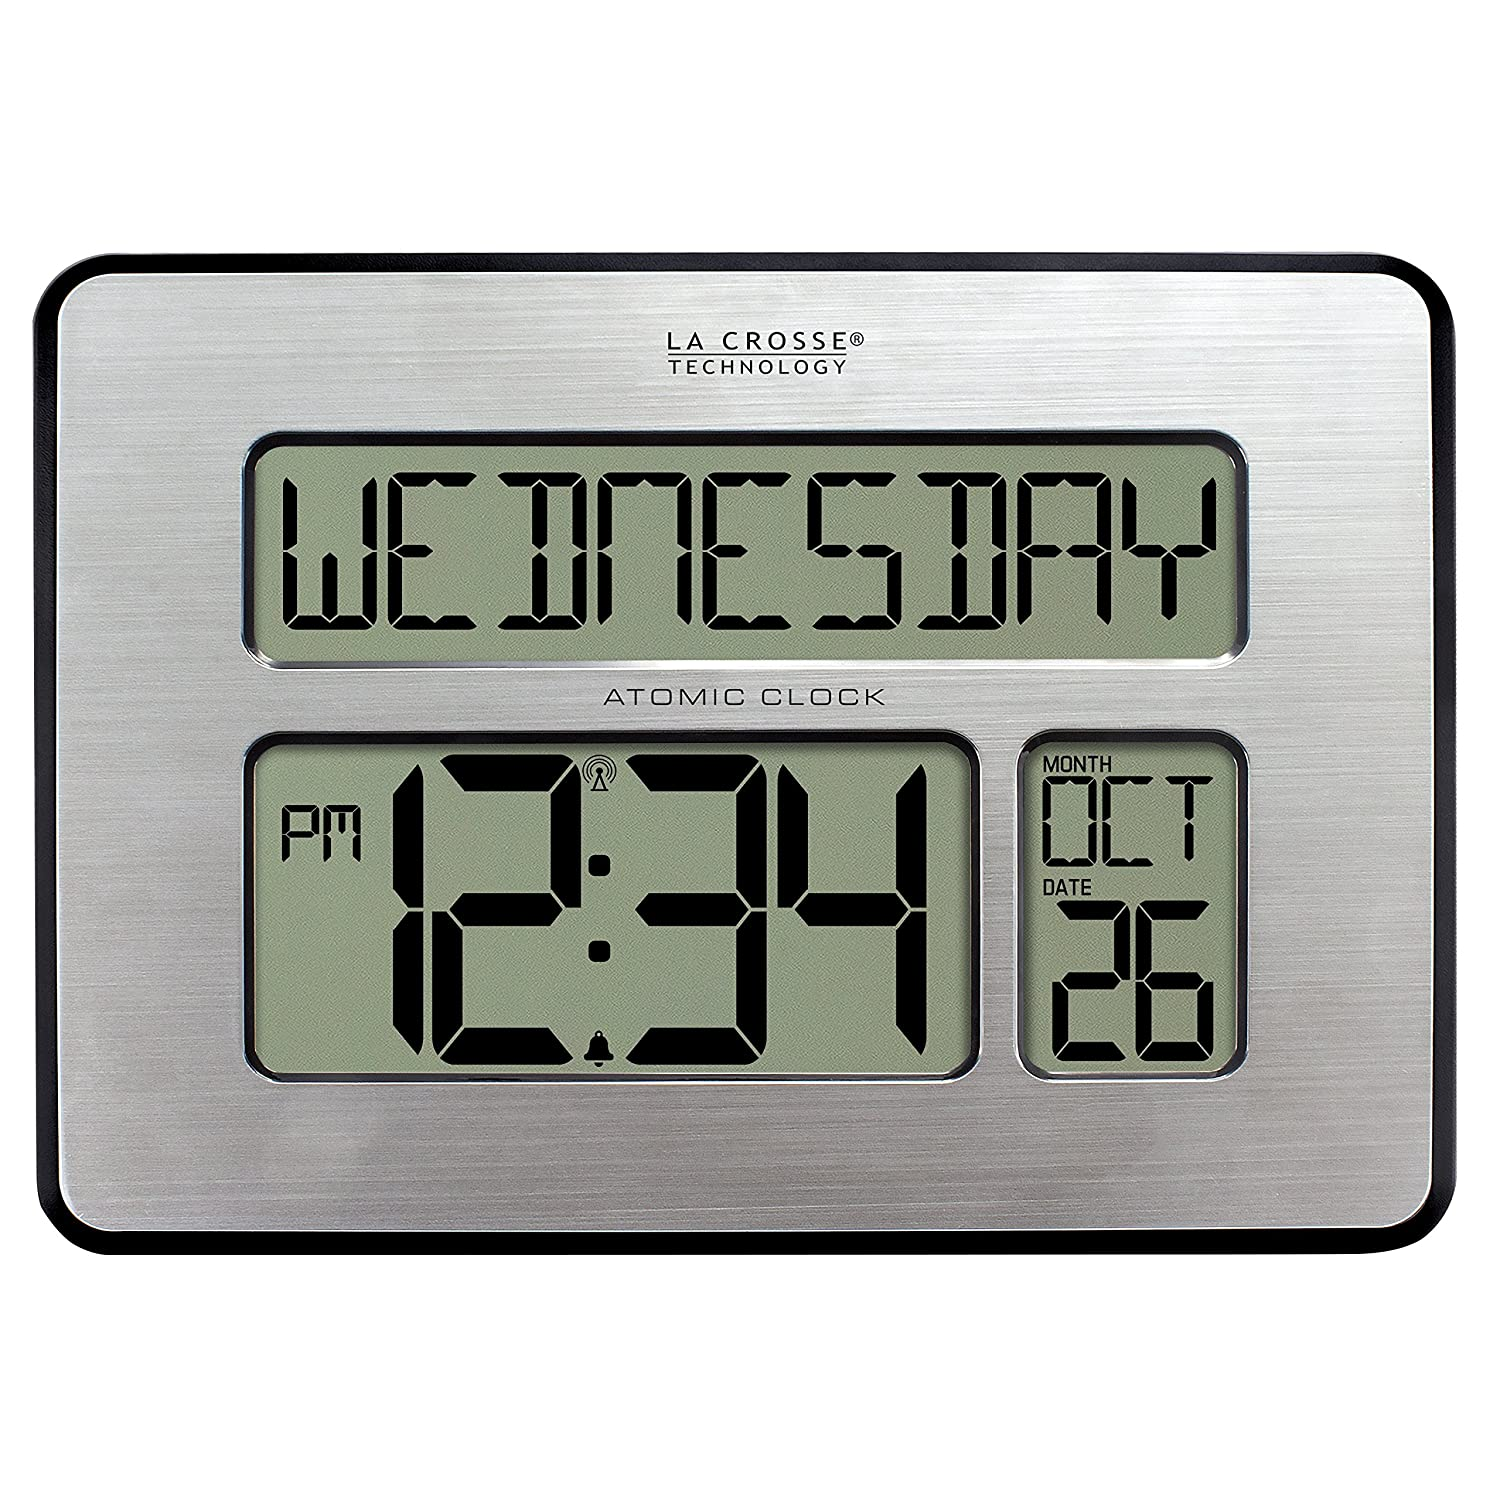 La Crosse Technology 513-1419BLv3-INT Backlight Atomic Full Calendar Clock with Extra Large Digits for the Elderly Ltd.